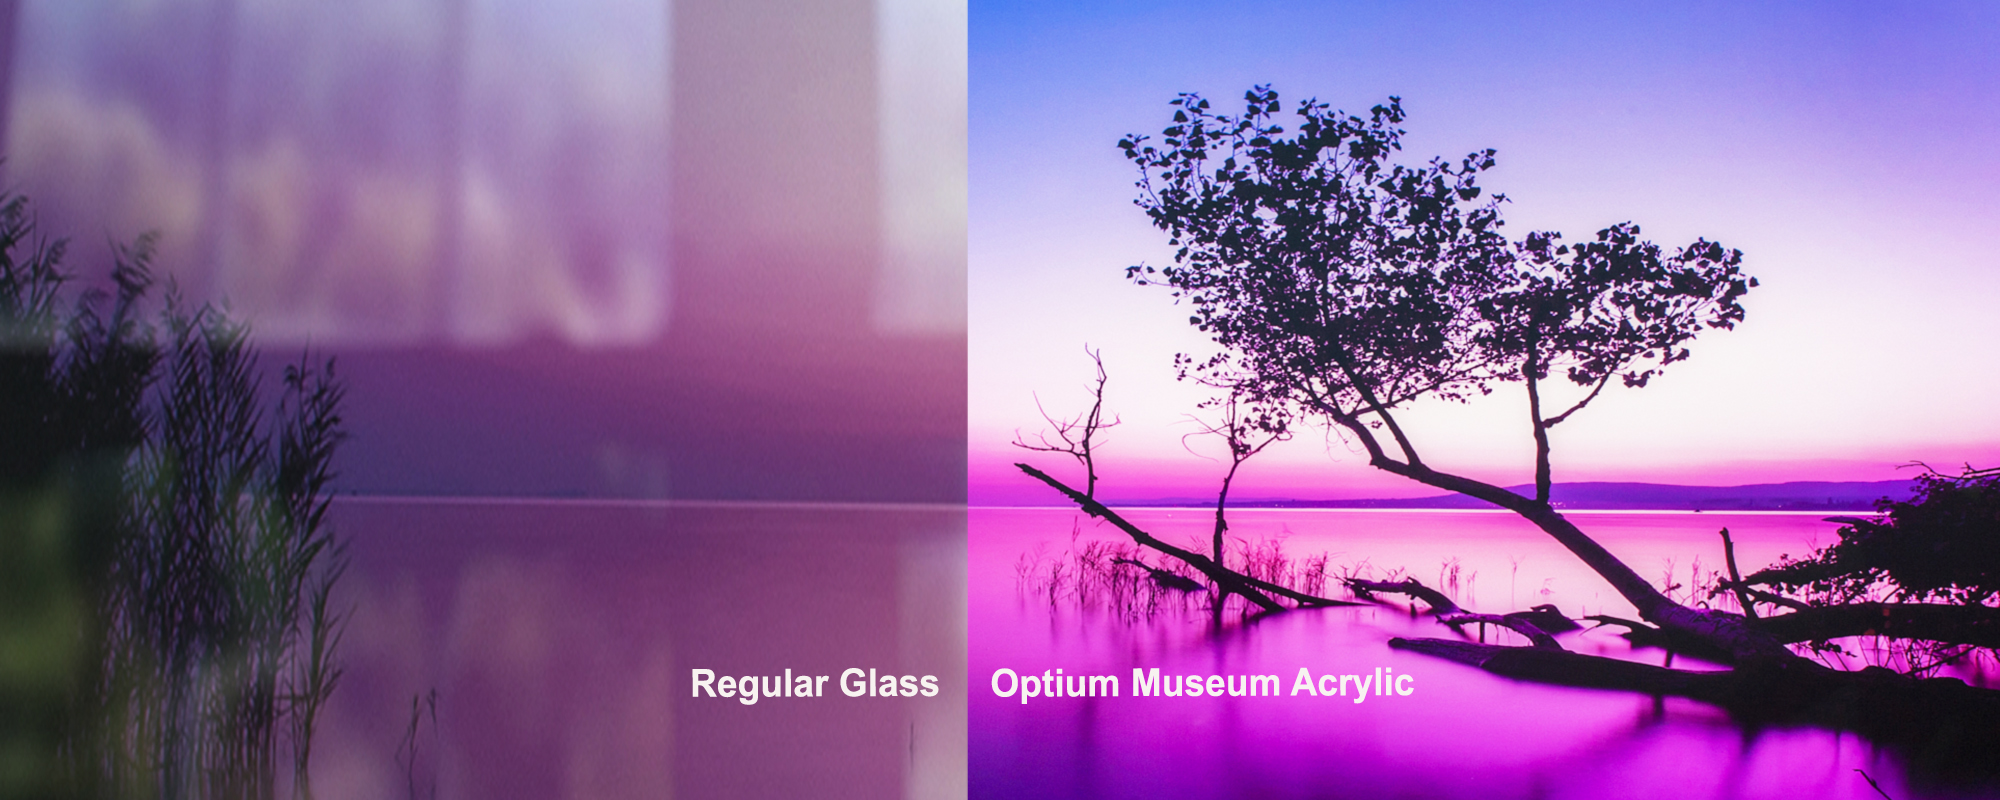 Regular glass vs Optium Museum Acrylic